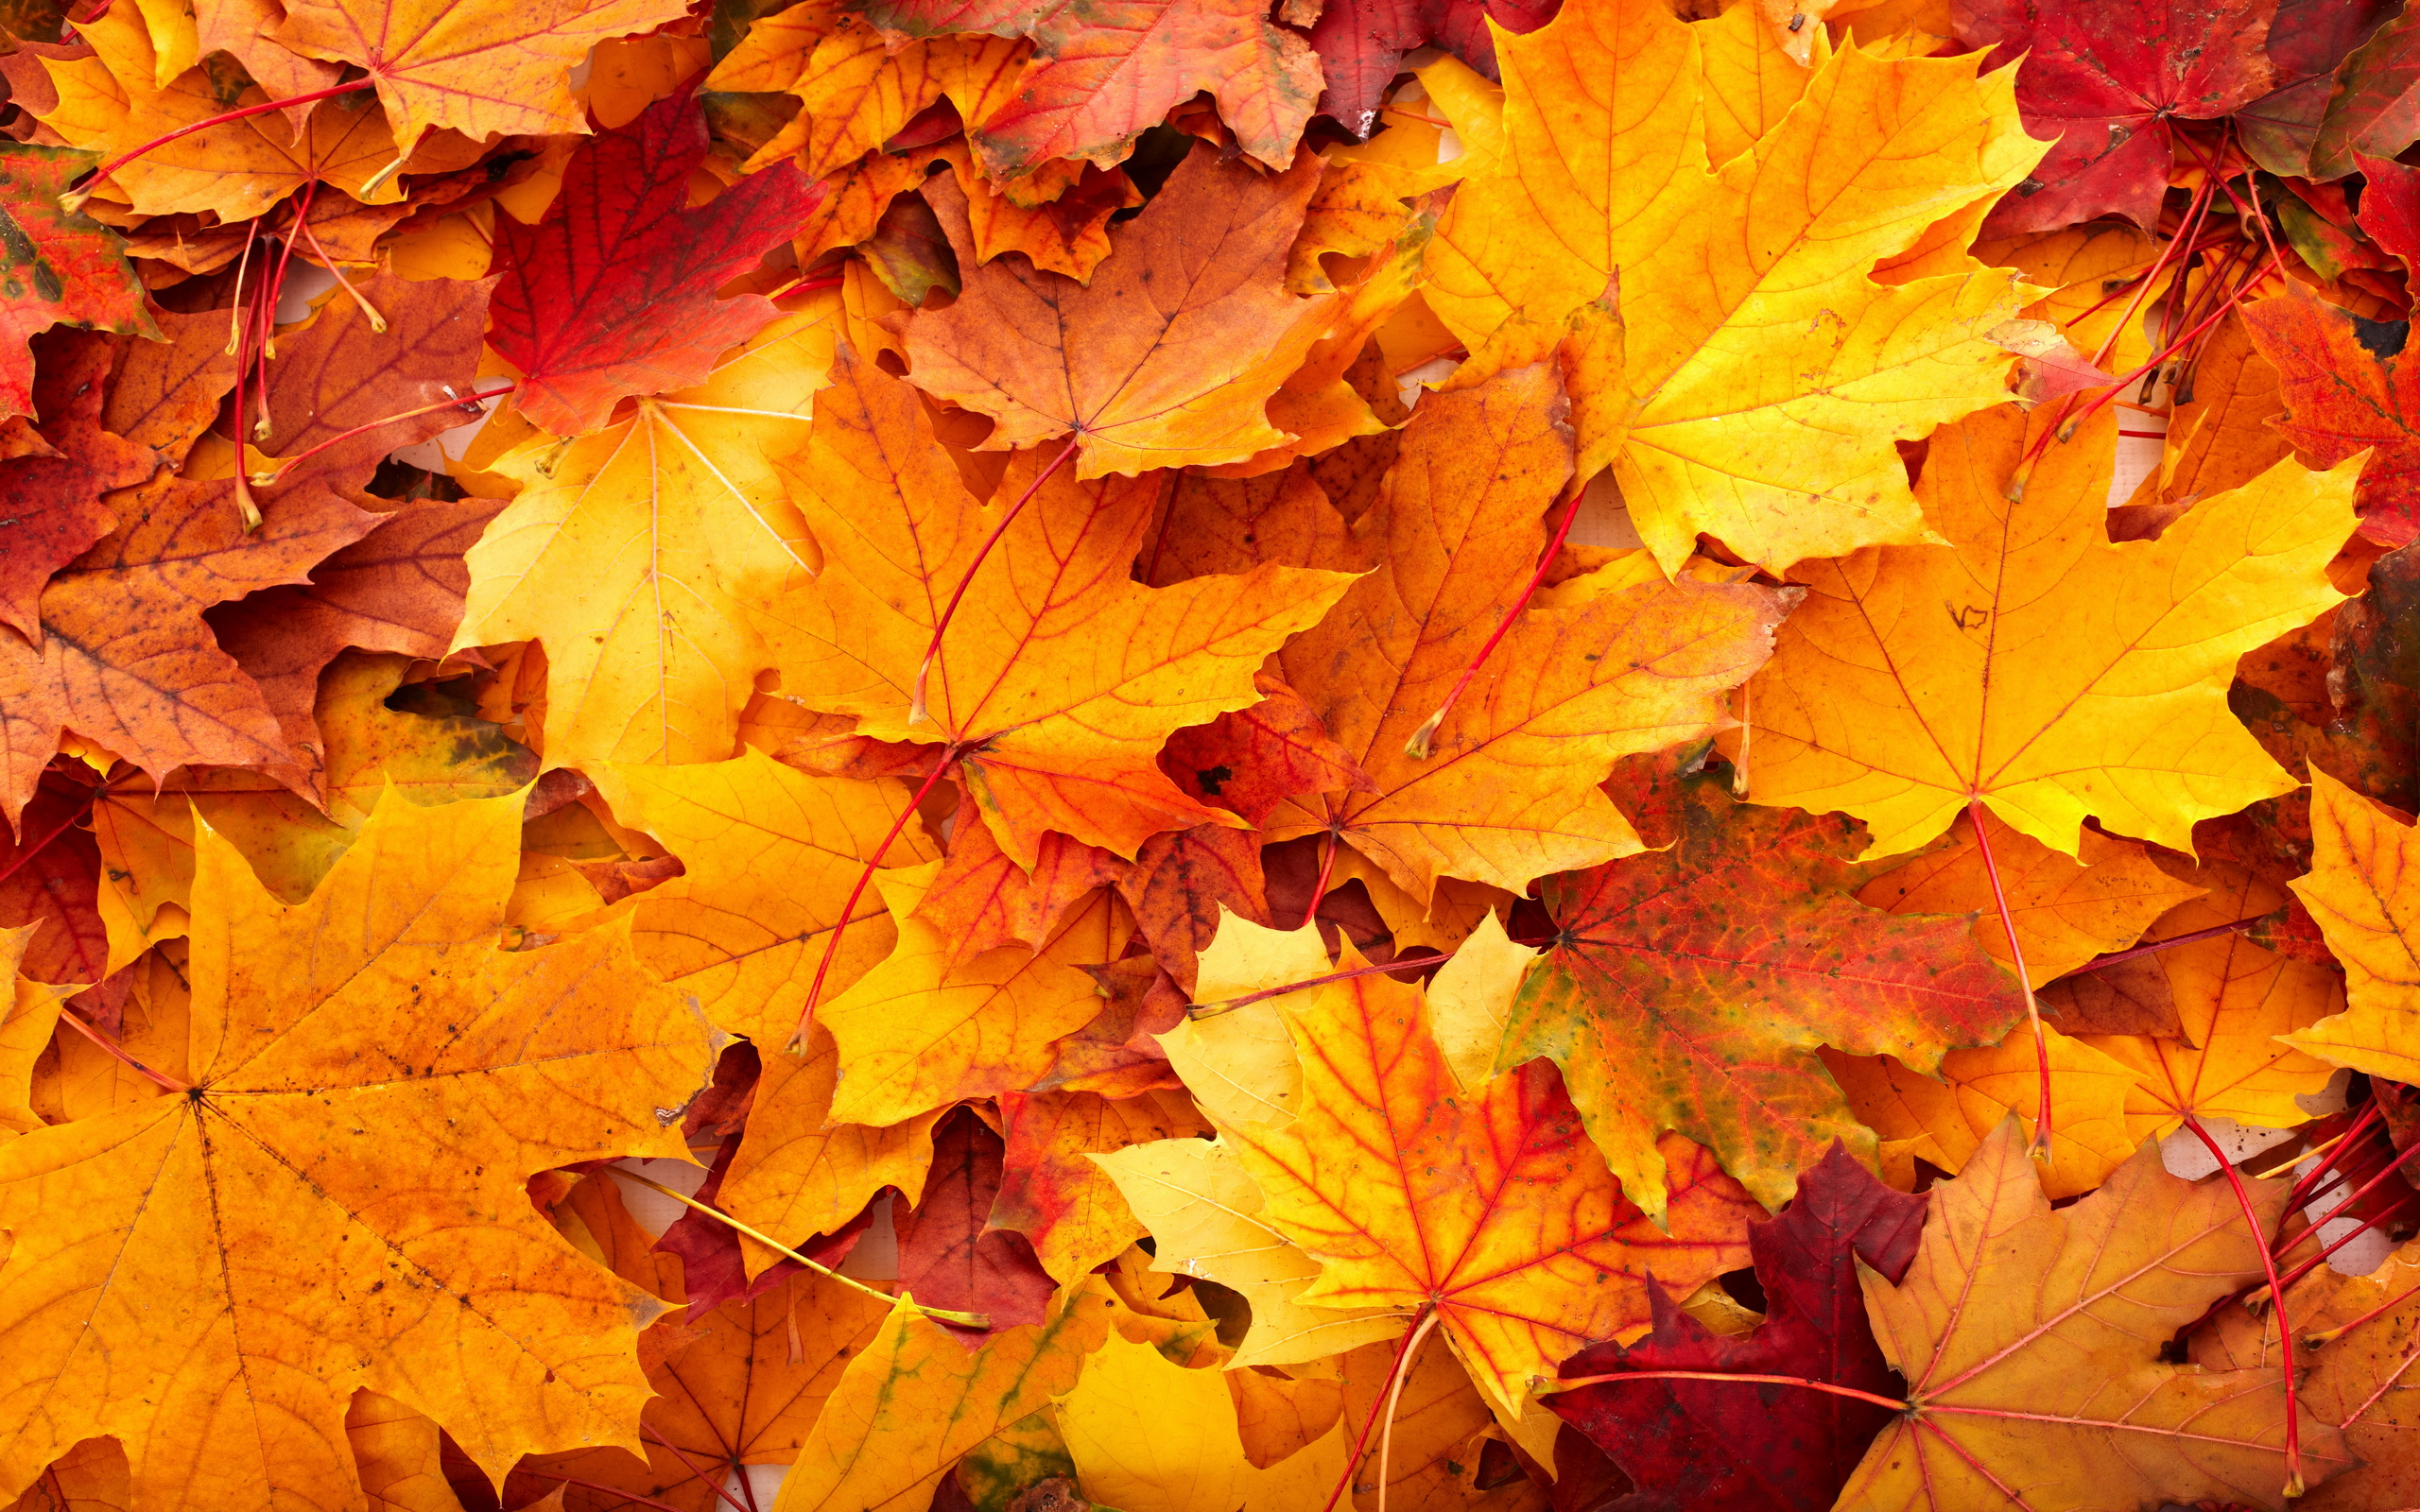 leaves a· pumpkins a· autum trees nature landscape leaf leaves 2560x2048 local offer android wallpaper